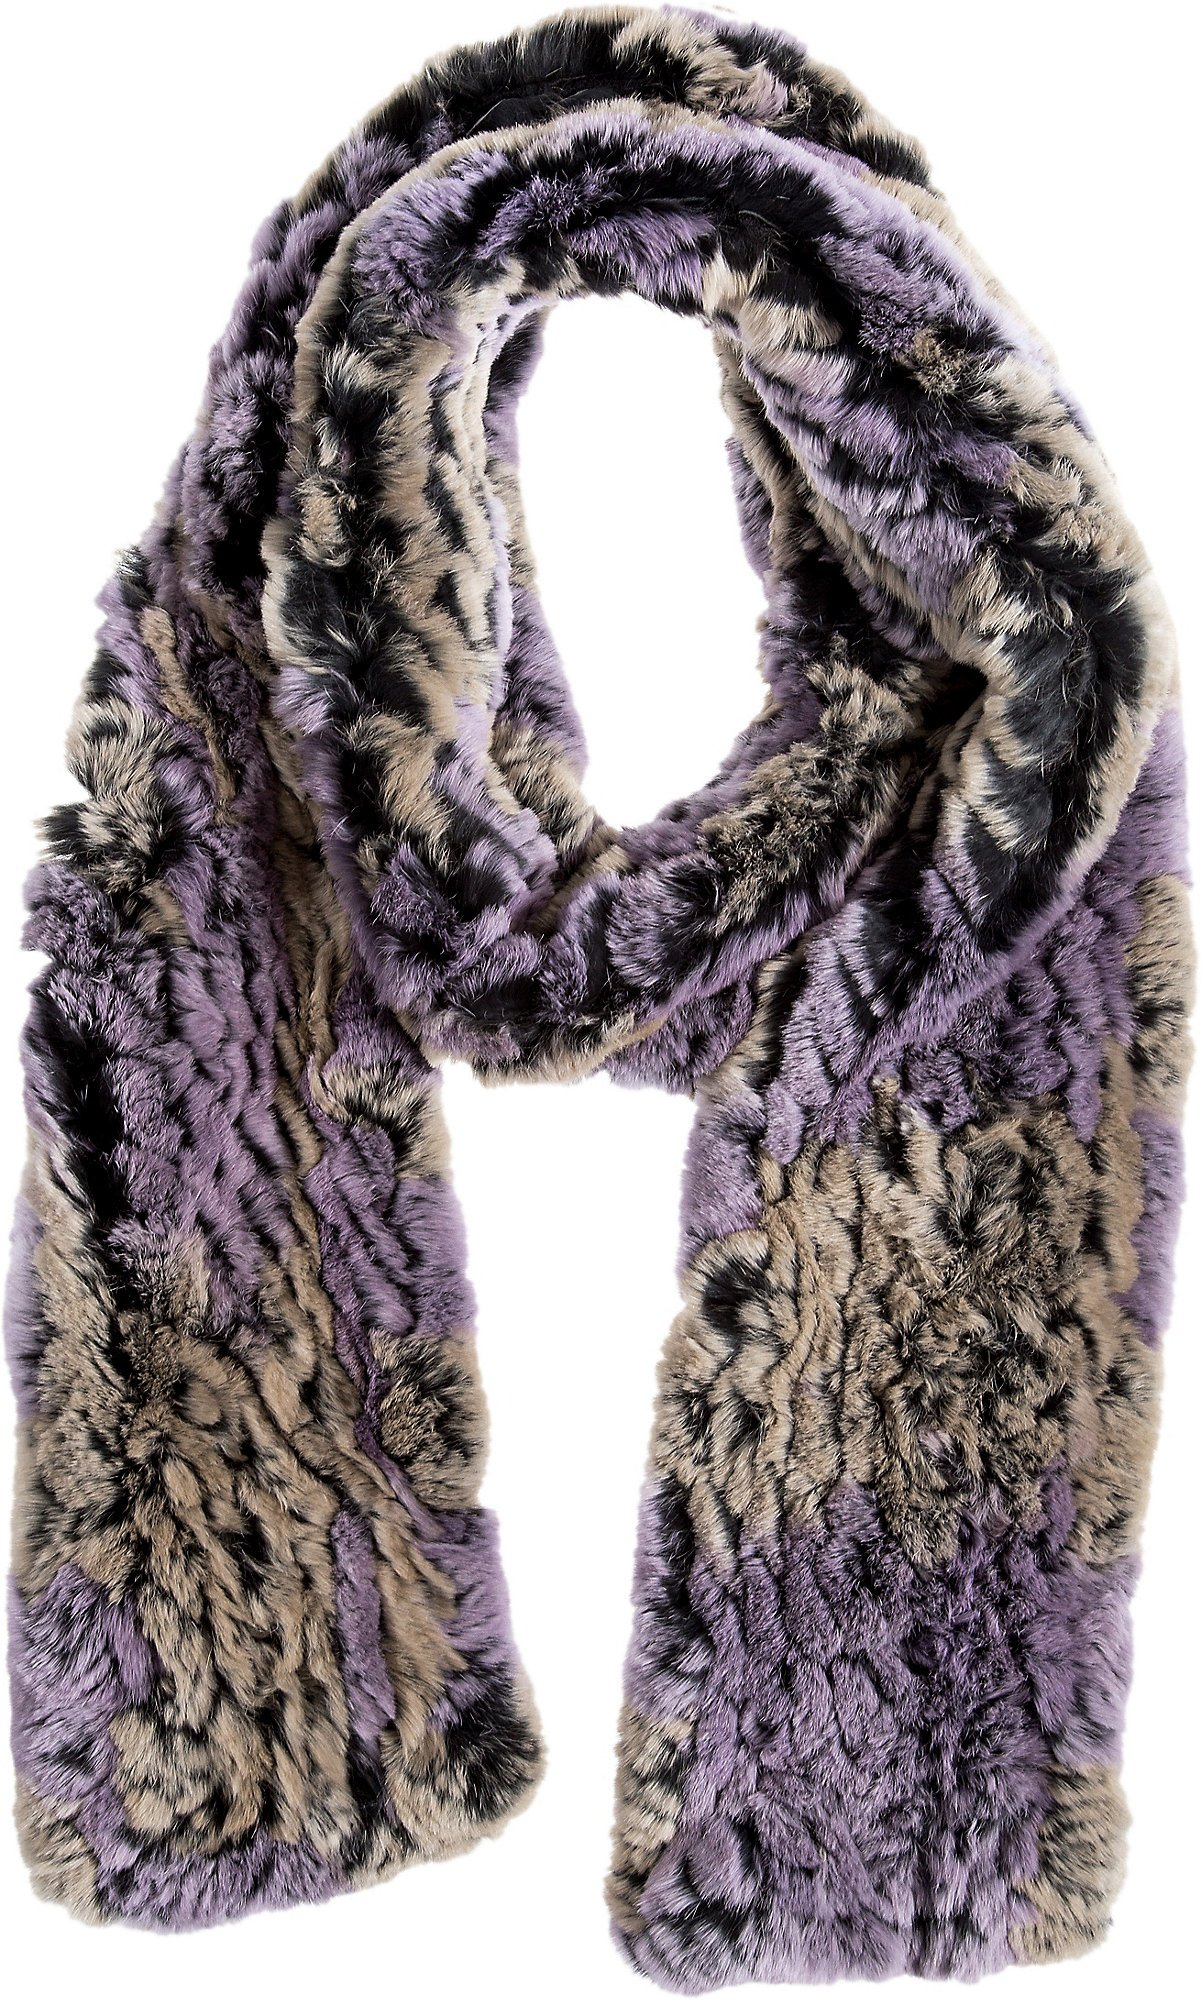 Lilac and Taupe Knitted Rex Rabbit Fur Scarf